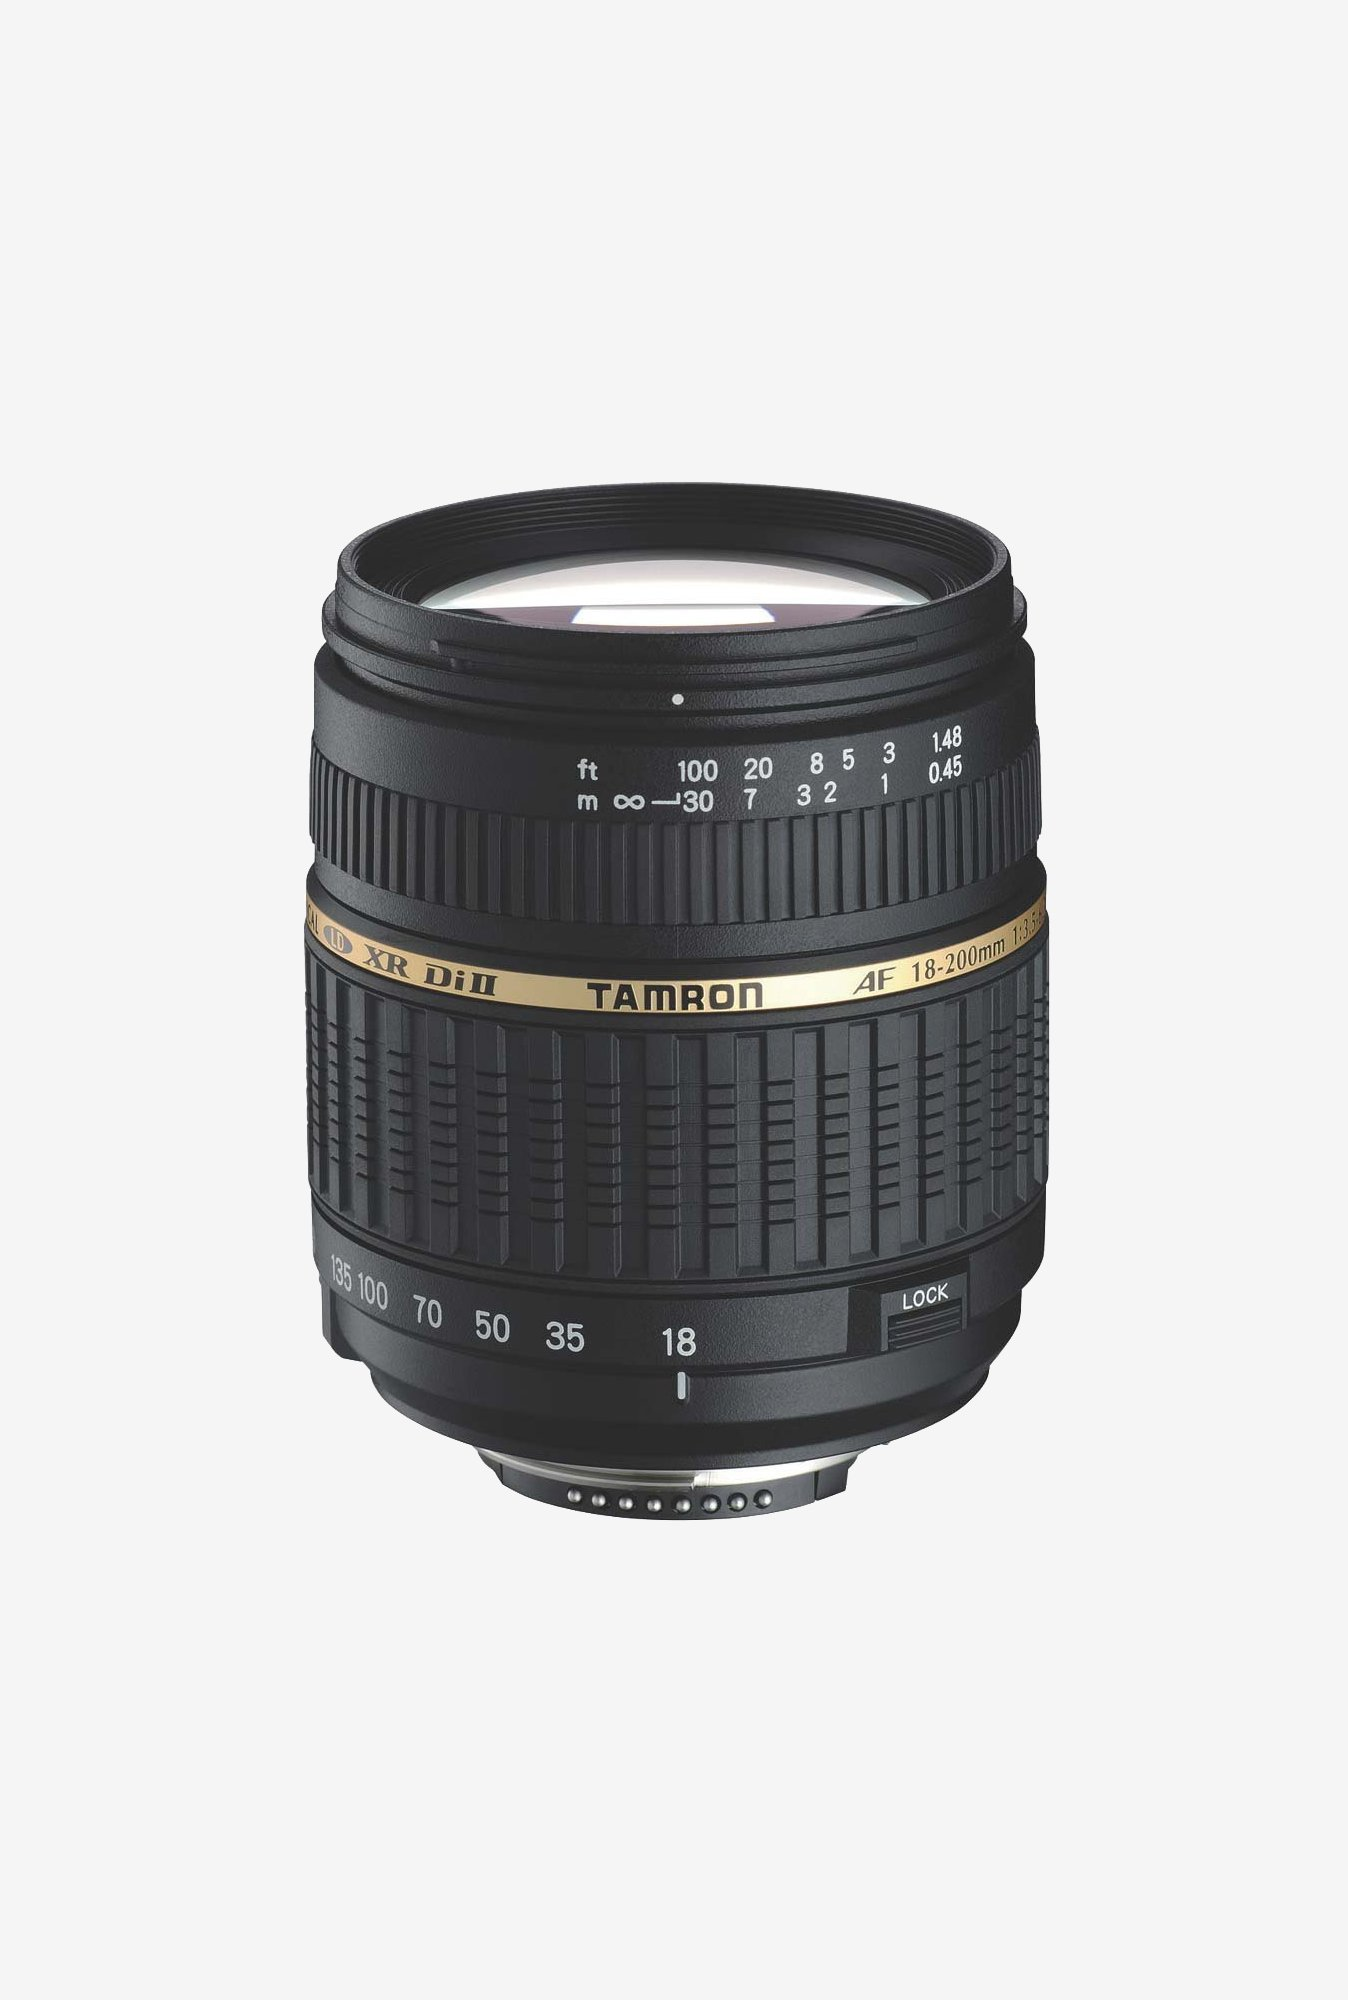 Tamron 18-200mm f/3.5-6.3 XR Di II LD AL Lens for Sony DSLR